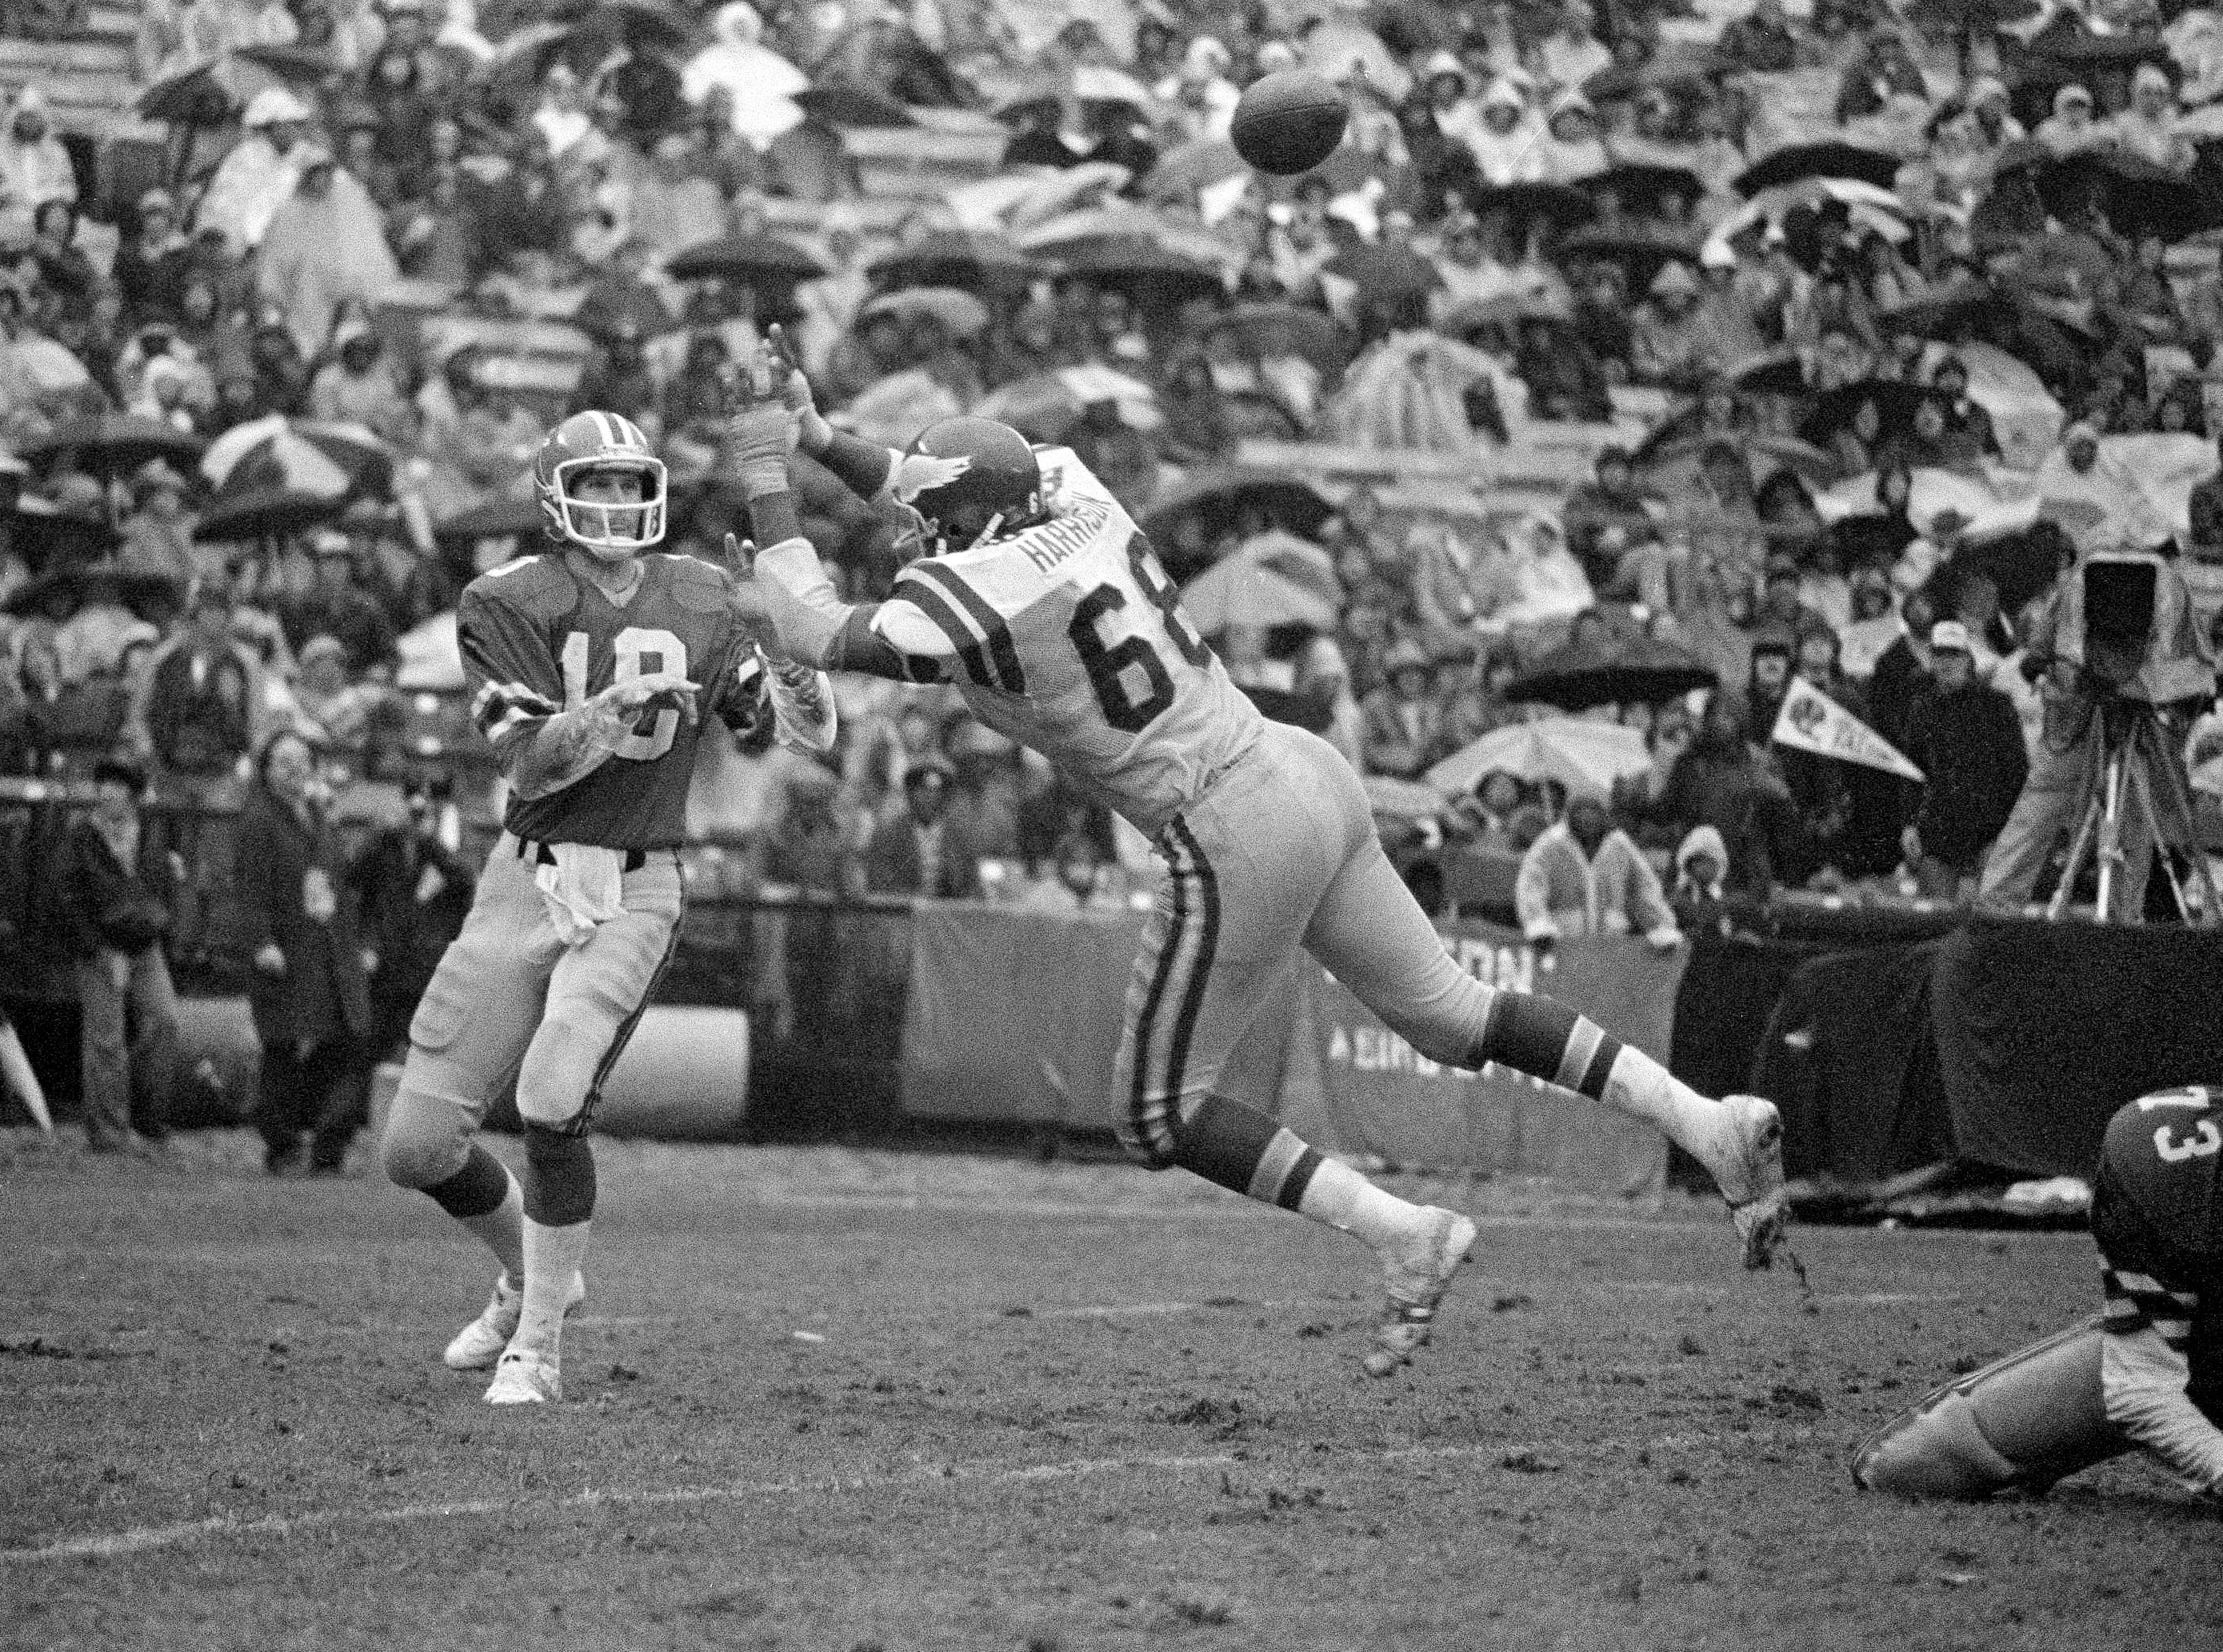 Philadelphia Eagles' Dennis Harrison (68) fails to stop the throw of Atlanta Falcons' Steve Bartkowski in the third quarter of the NFC Wildcard Playoff game in Atlanta Fulton County Stadium, Dec. 24, 1978. The Falcons defeated the Eagles, 14-13.